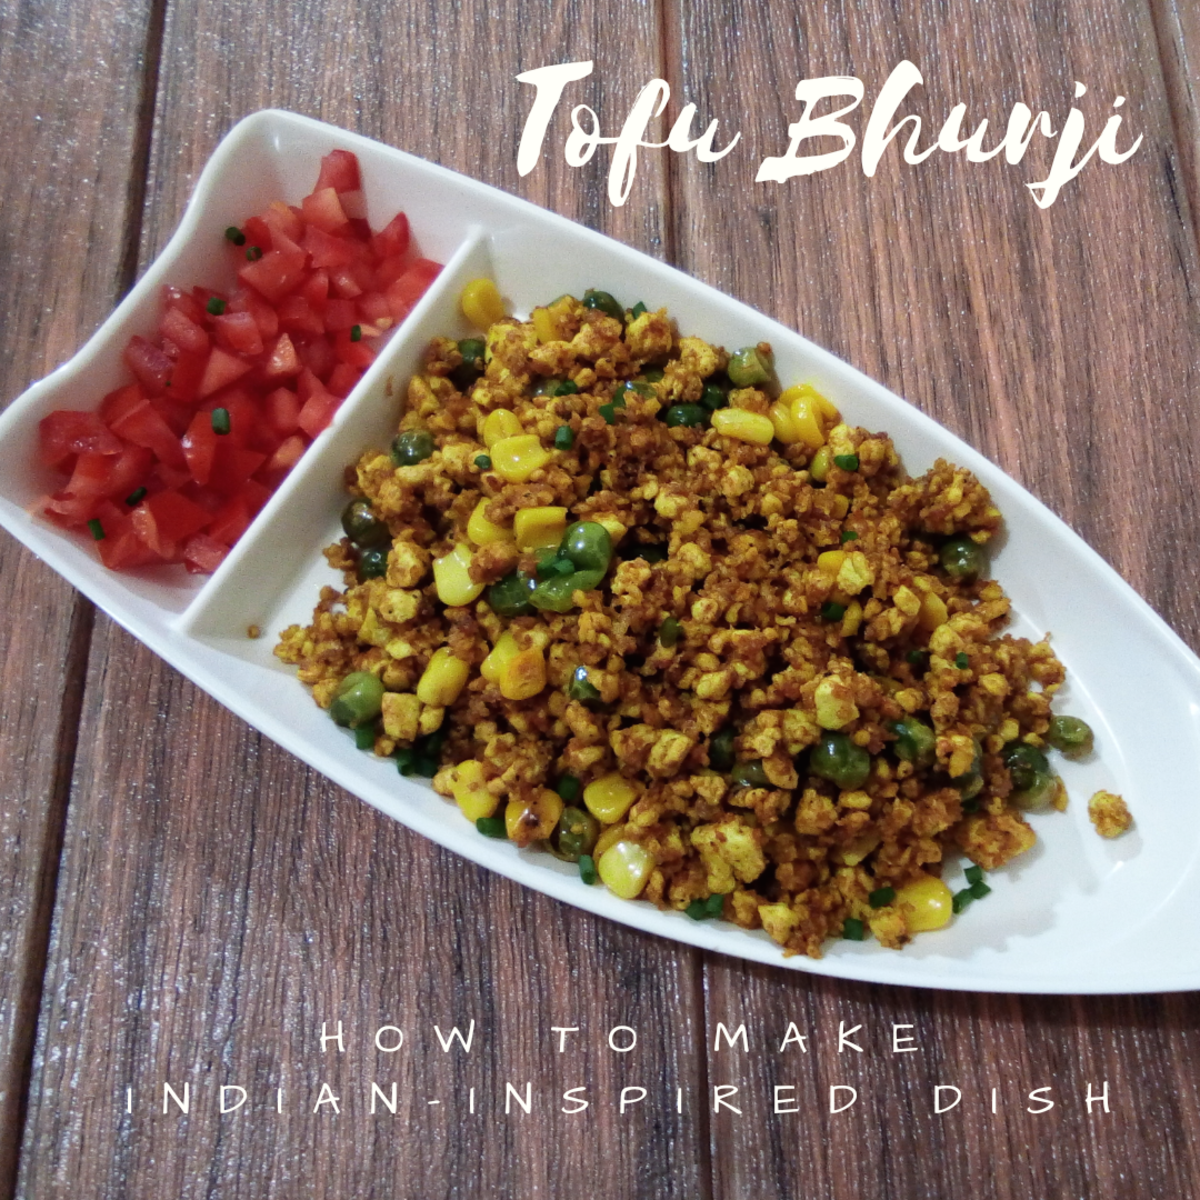 How to Make Tofu Bhurji: An Indian-Inspired Dish